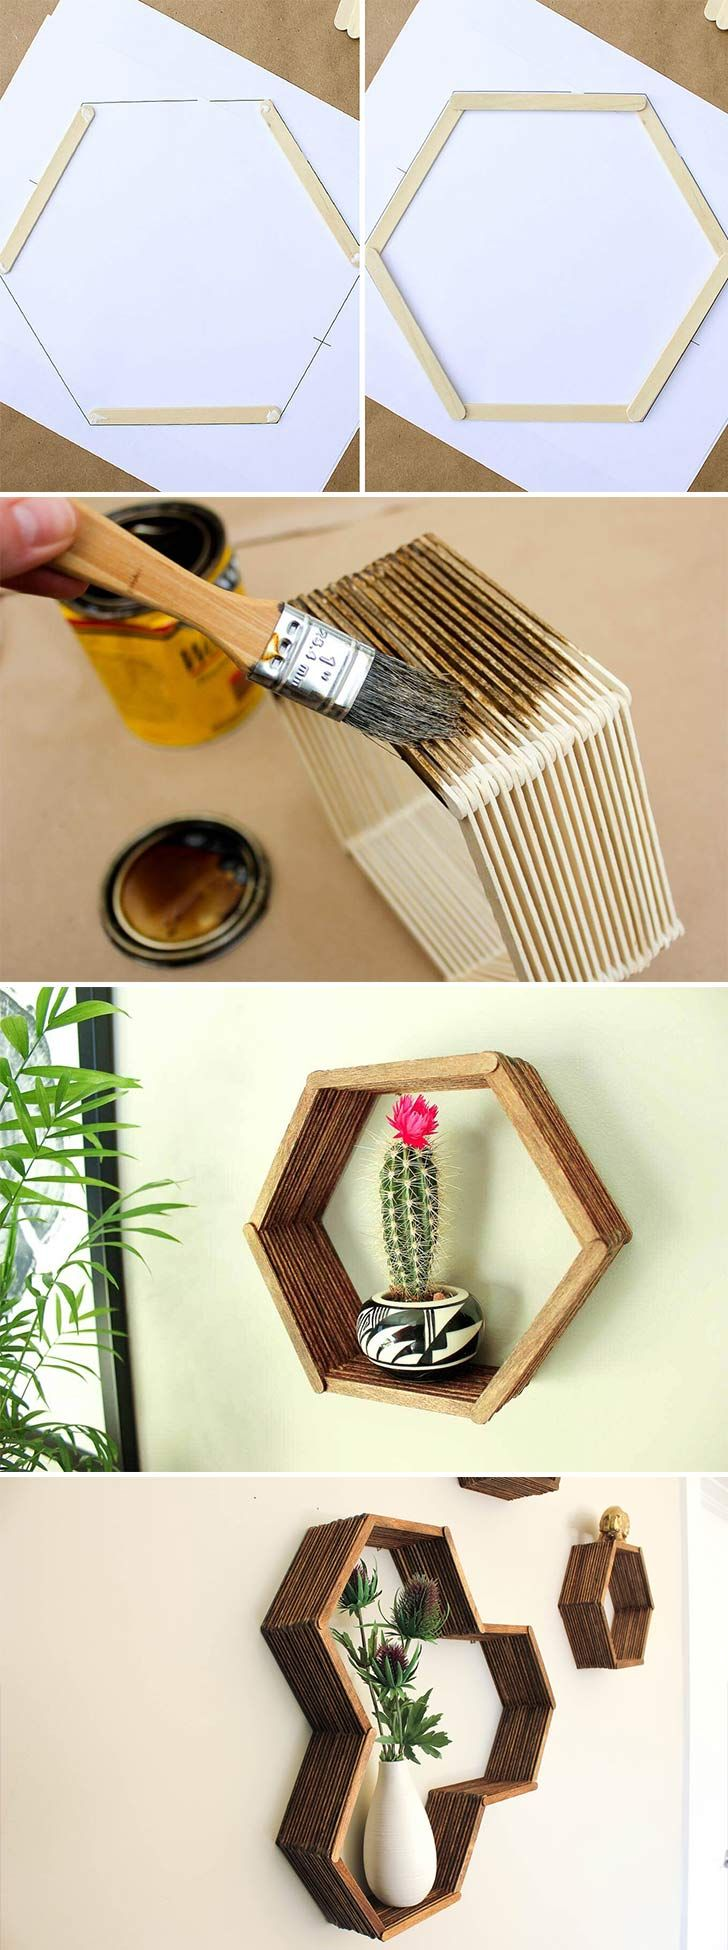 Do it yourself home projects pinterest